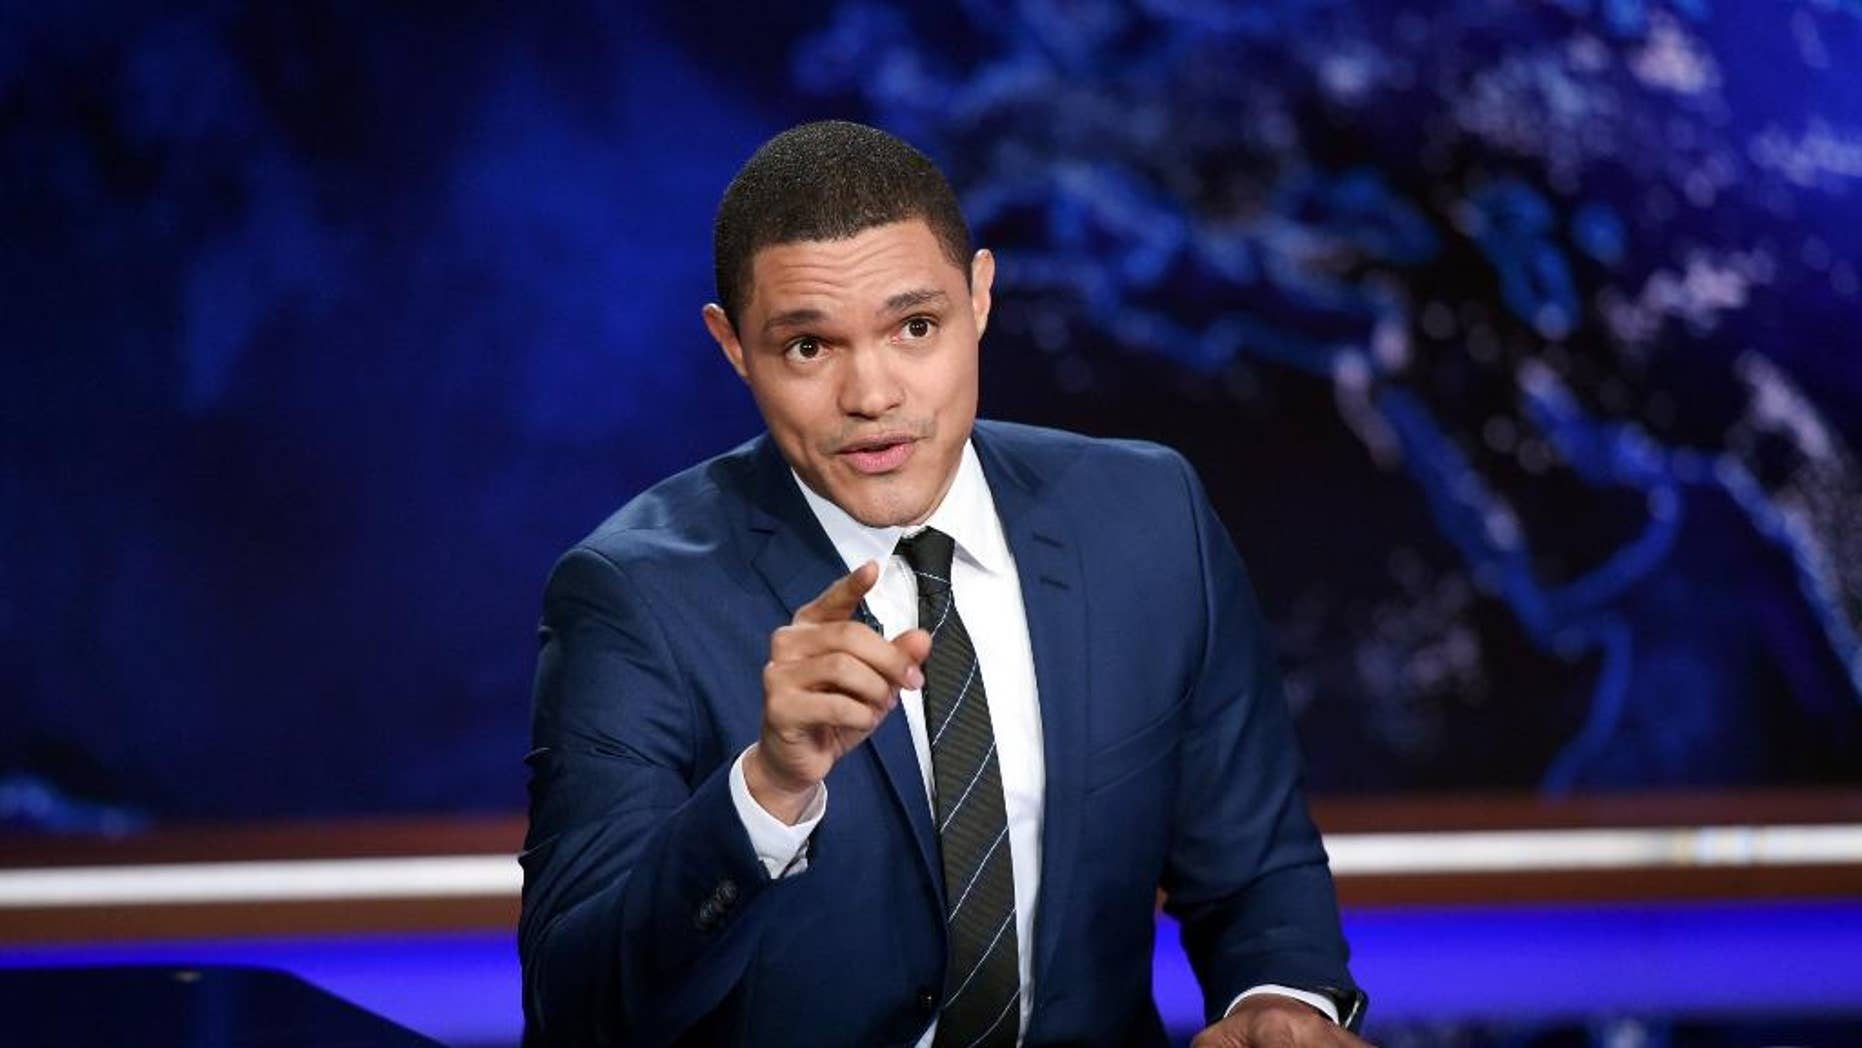 """FILE - In this Sept. 29, 2015, file photo, Trevor Noah works on set during a taping of """"The Daily Show with Trevor Noah"""" in New York. As they returned to work after Sunday morning's mass shooting in a gay nightclub in Orlando, Fla.,, TV's late-night hosts faced the challenge none of them looks forward to. They had to find a way to bond with their viewers, as they do every night, but with shared feelings unrelieved by the comfort of comedy. That is what Noah did Monday, June 13, 2016. (Photo by Evan Agostini/Invision/AP, File)"""